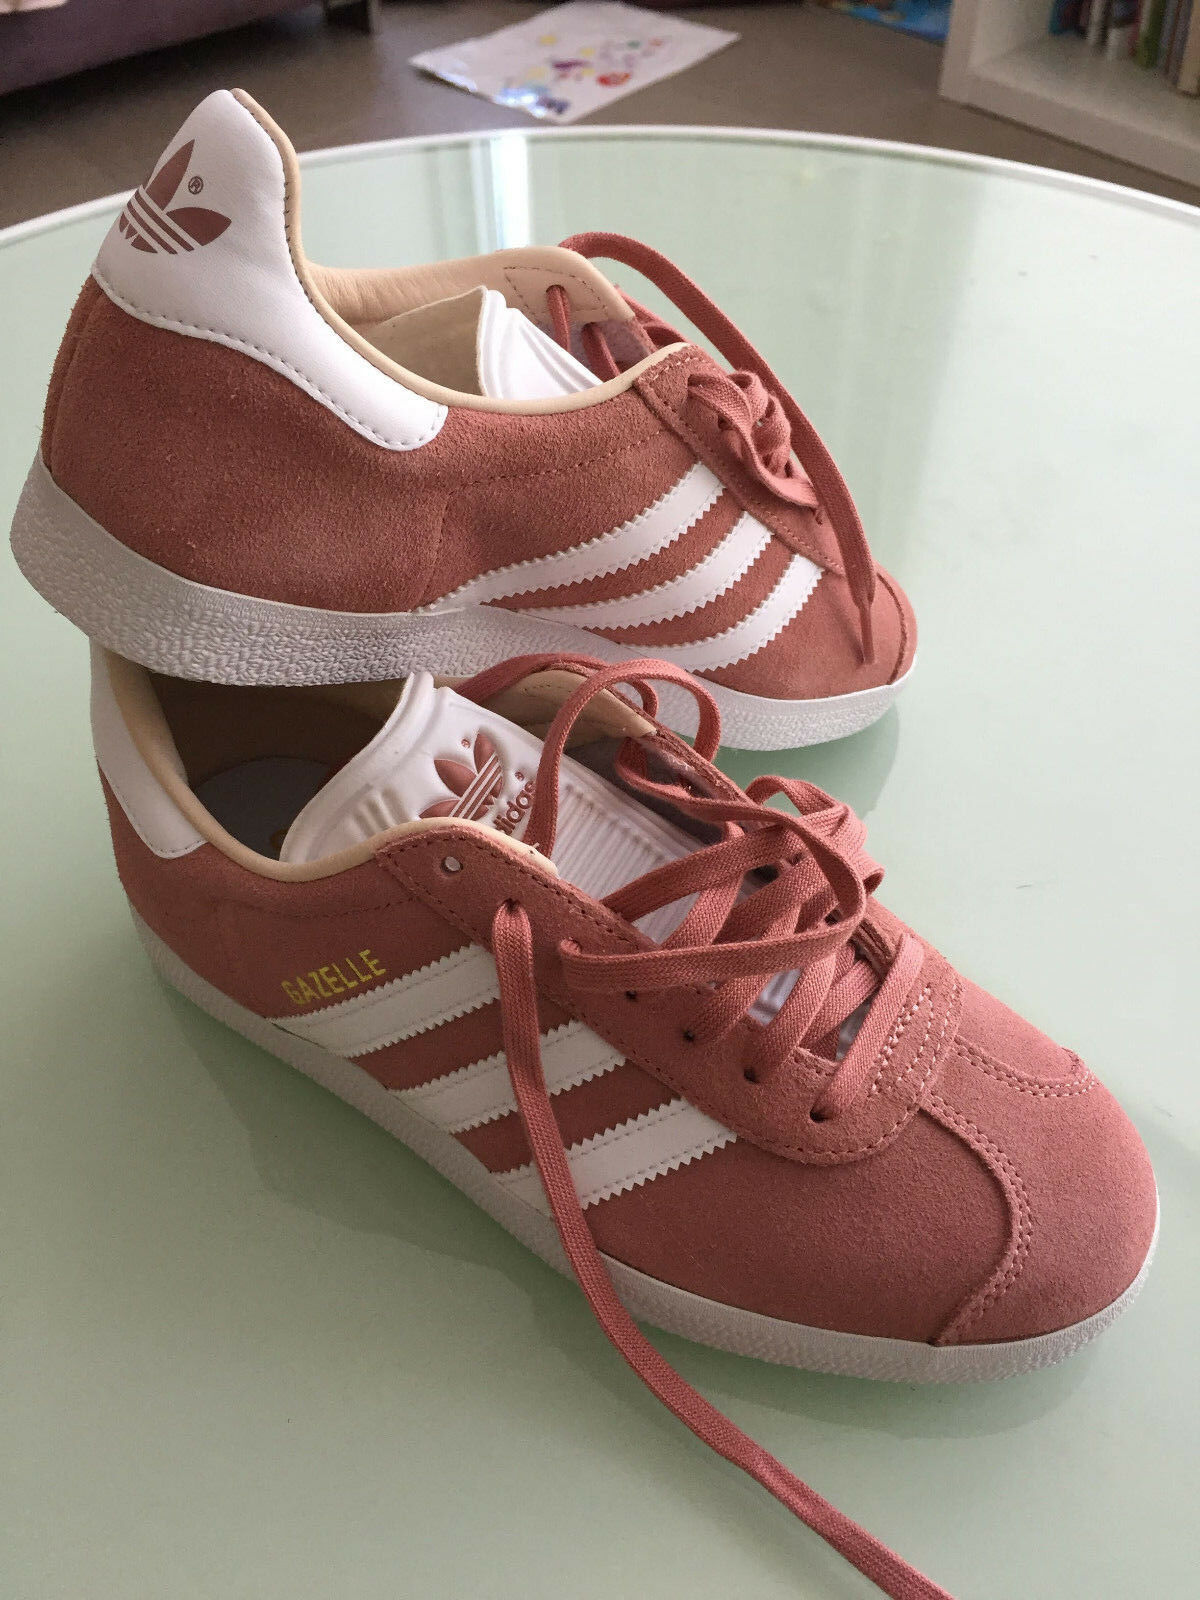 Adidas Gazelle shoes Women's Size 5